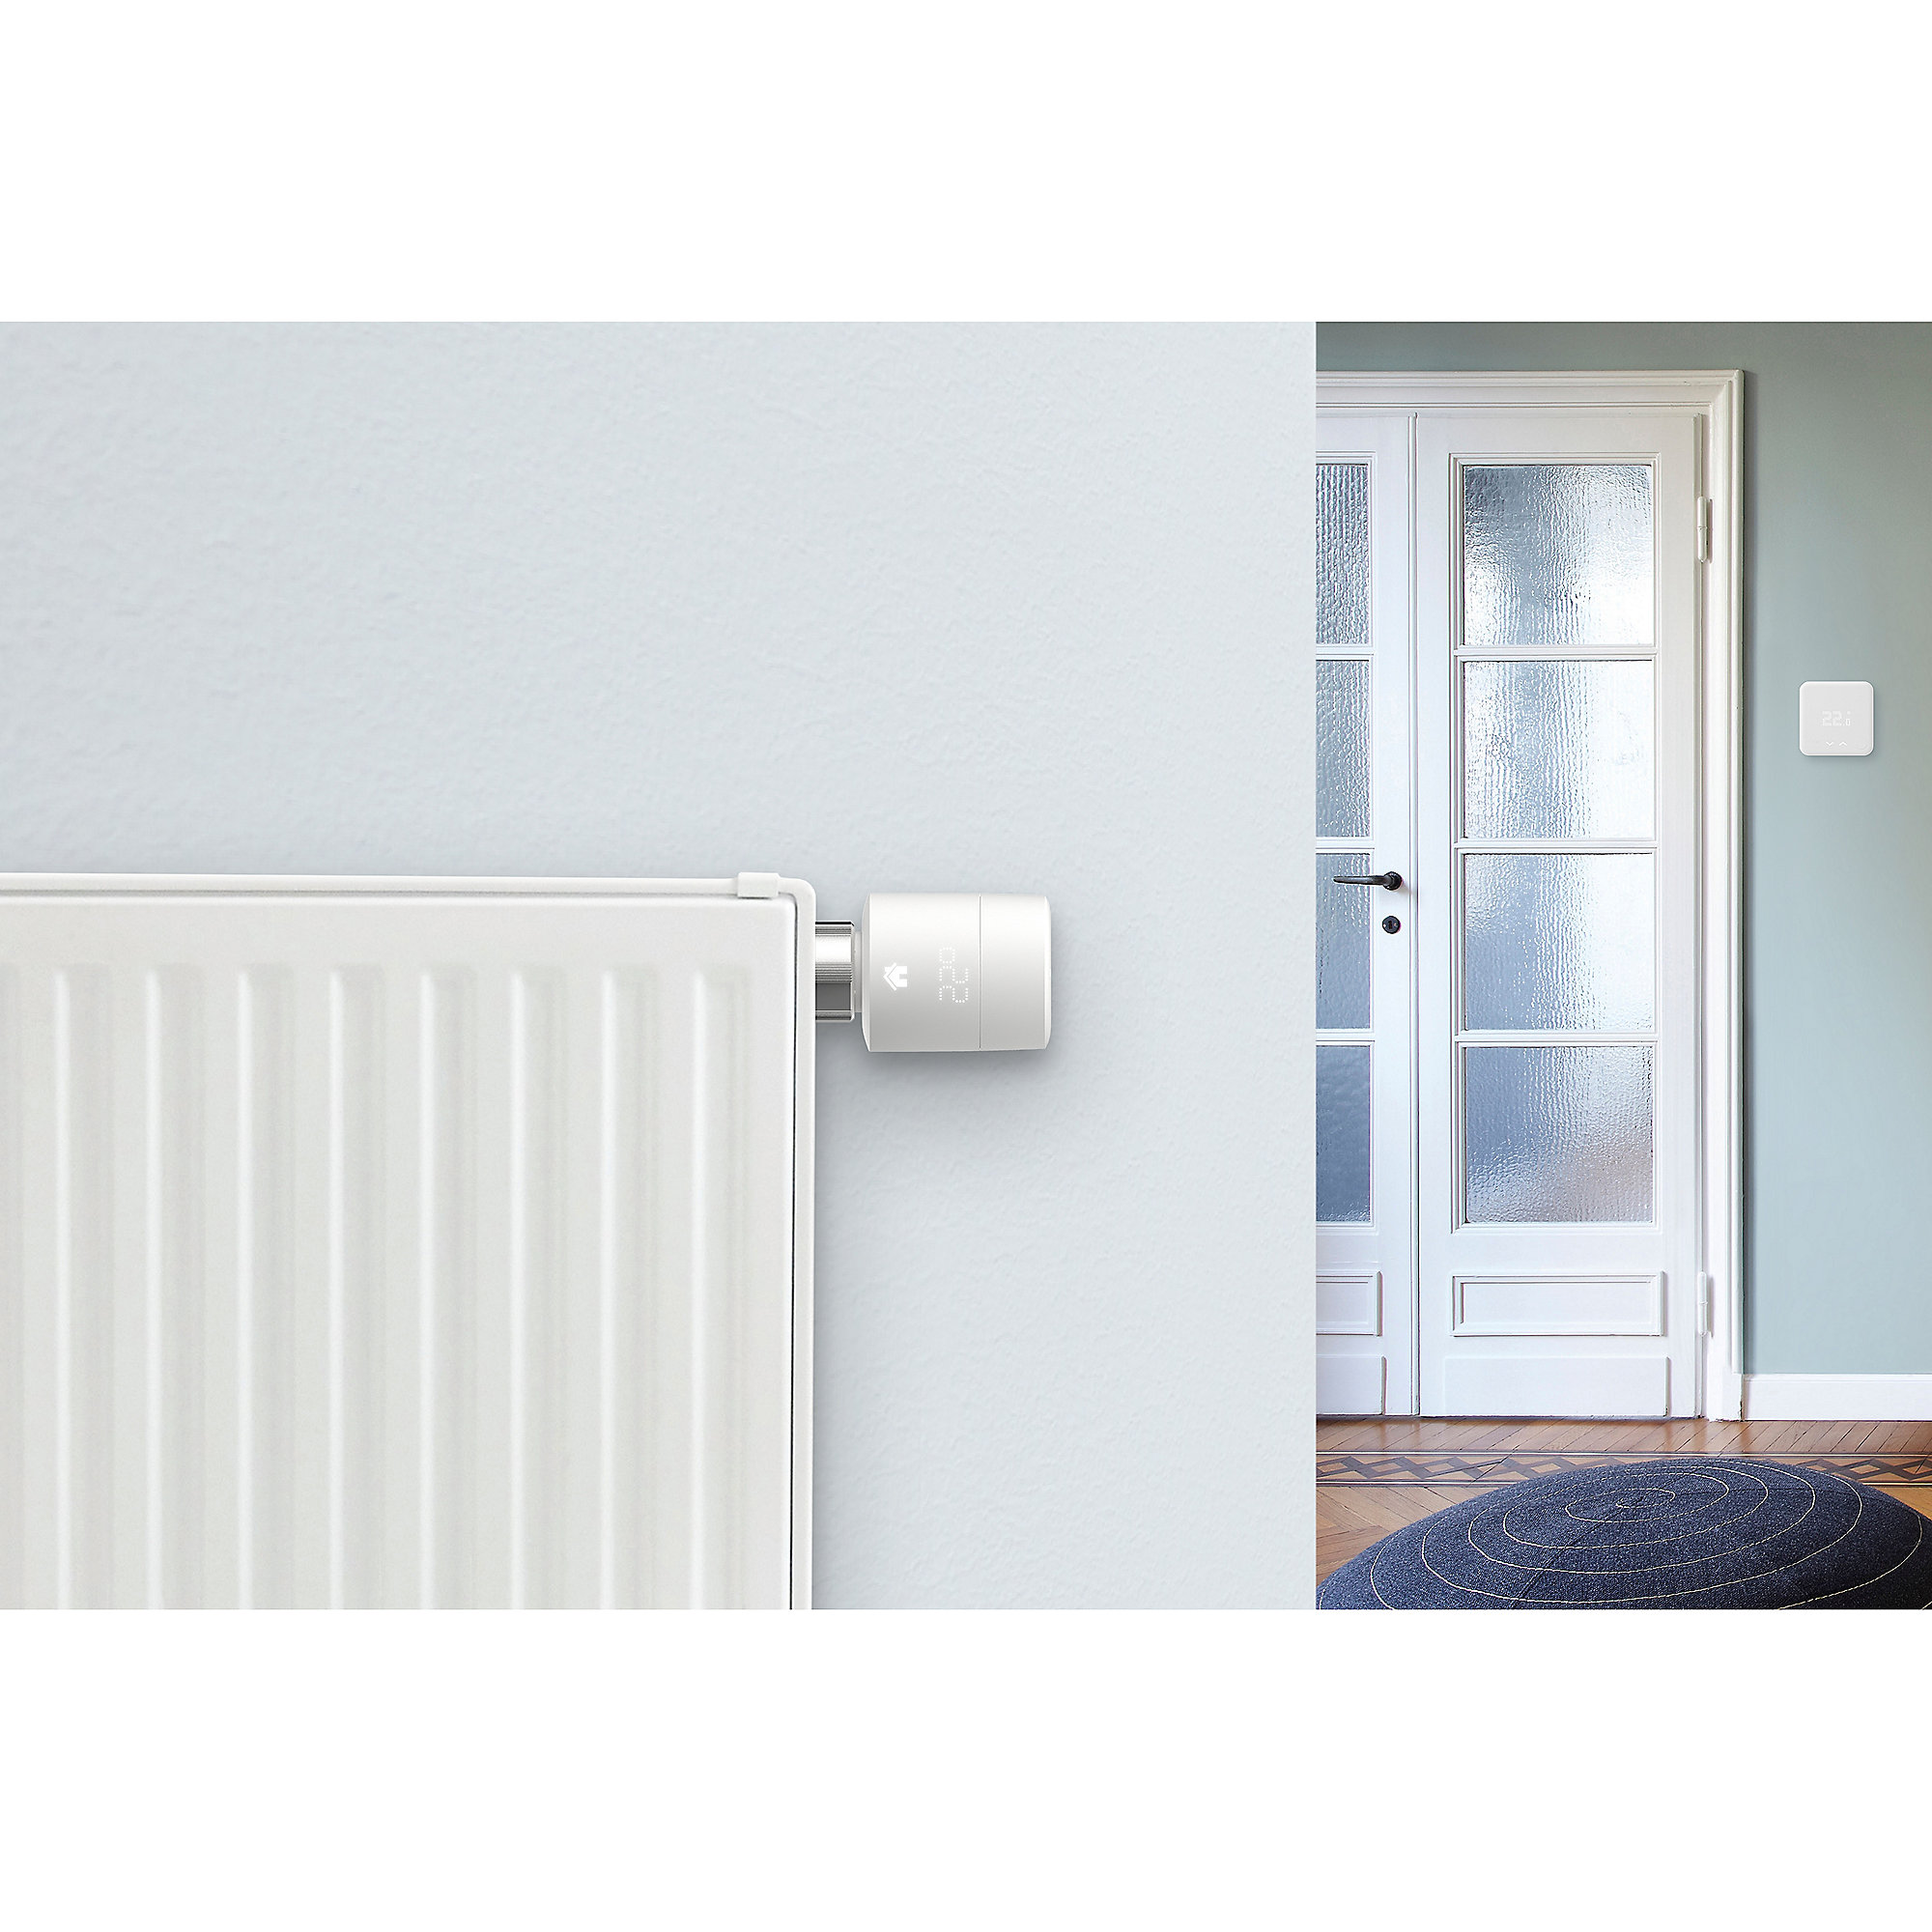 tado Smartes Heizkörperthermostat mit Apple HomeKit kompatibel 5er Set